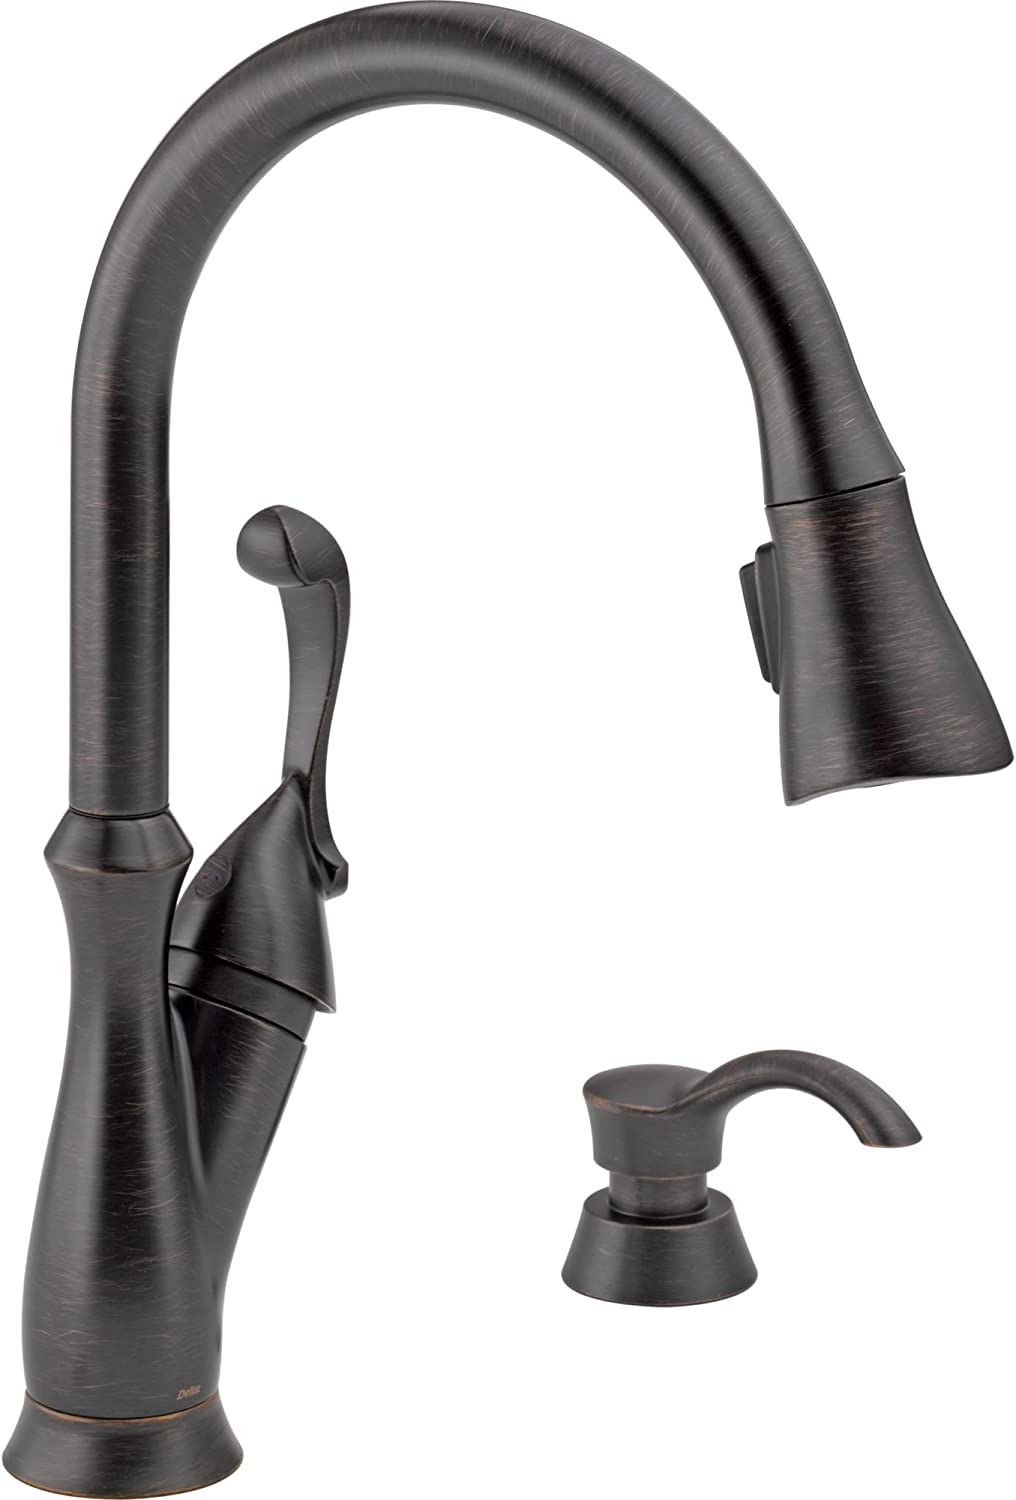 Delta Faucet Arabella Single-Handle Kitchen Sink Faucet with Pull Down Sprayer, Soap Dispenser and Magnetic Docking Spray Head, Venetian Bronze 19950-RBSD-DST